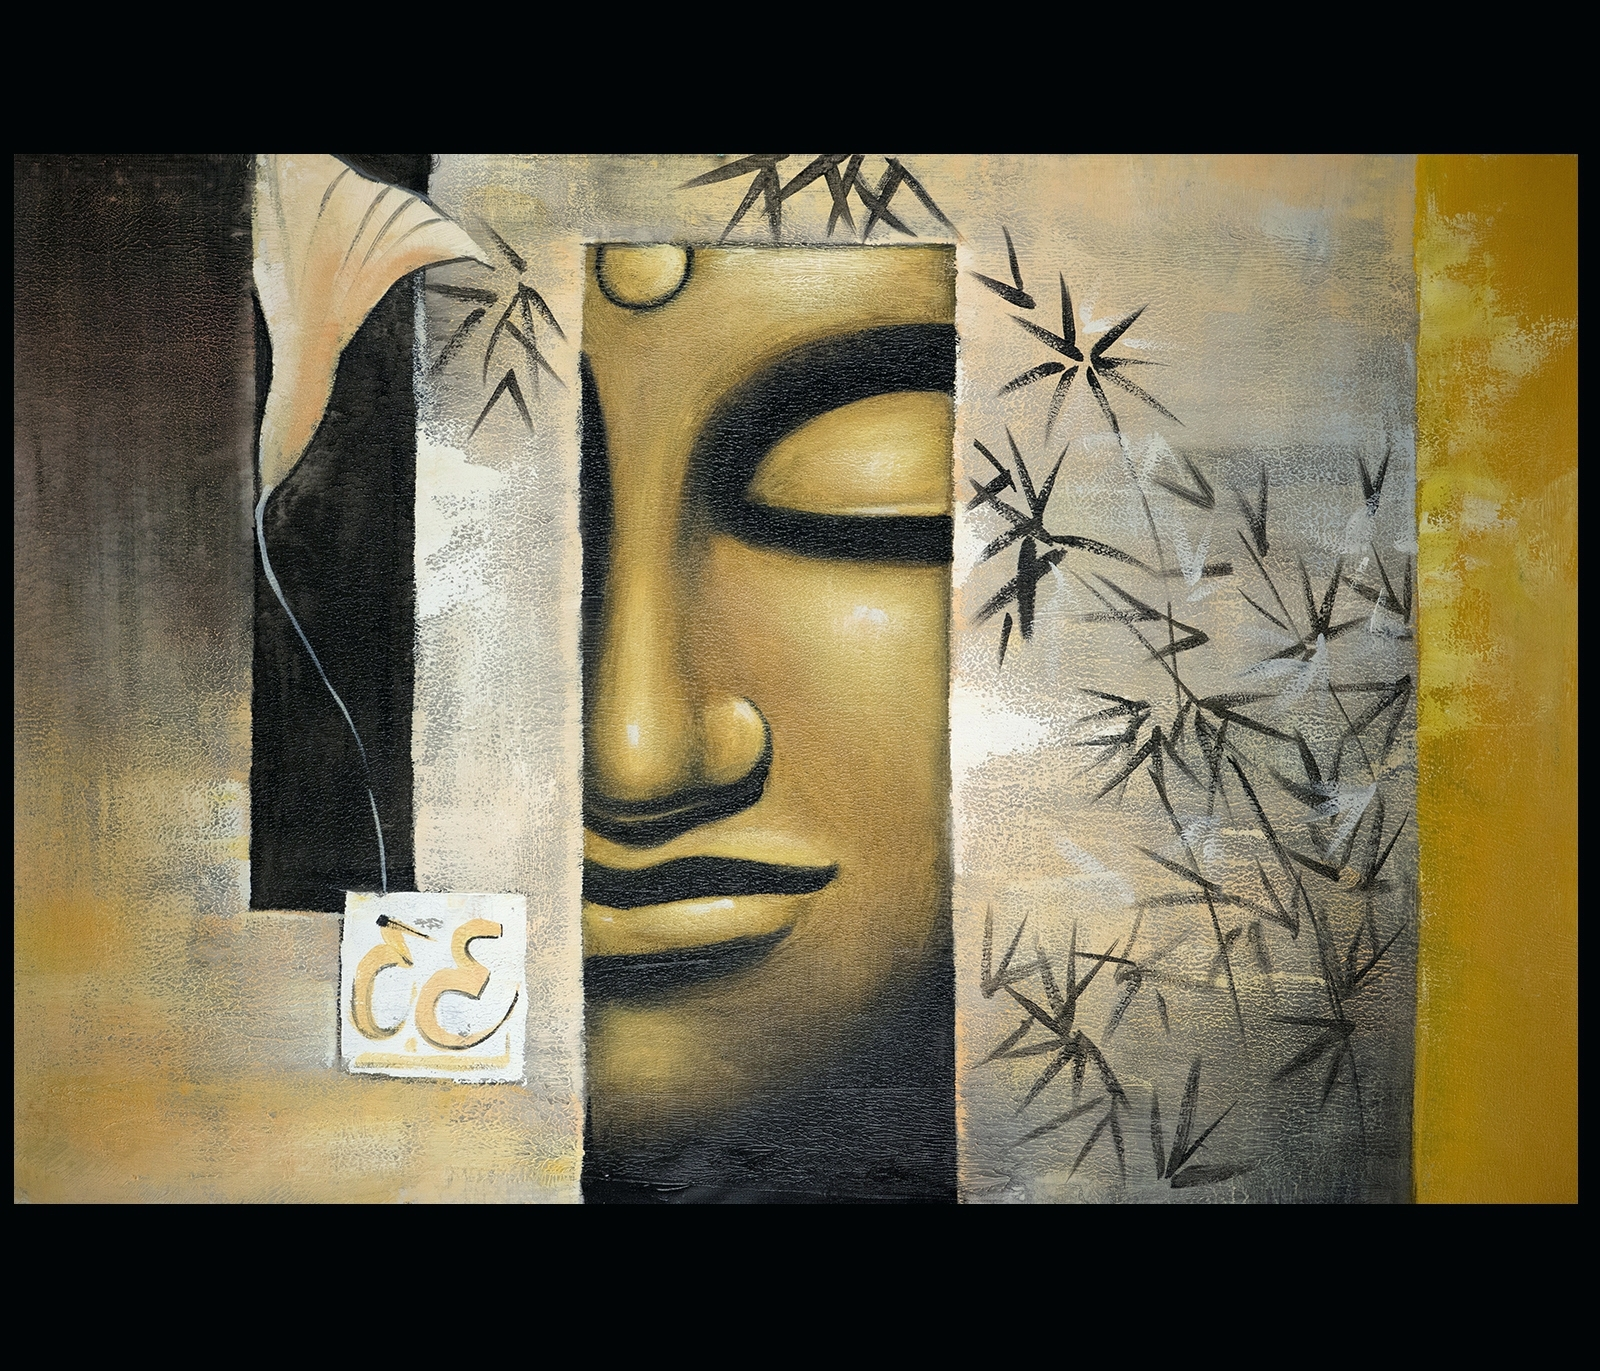 Well Liked India Abstract Metal Wall Art Regarding Wall Arts ~ Buddha Wall Art Amazon Buddha Wall Art Pier 1 Buddha (View 15 of 15)